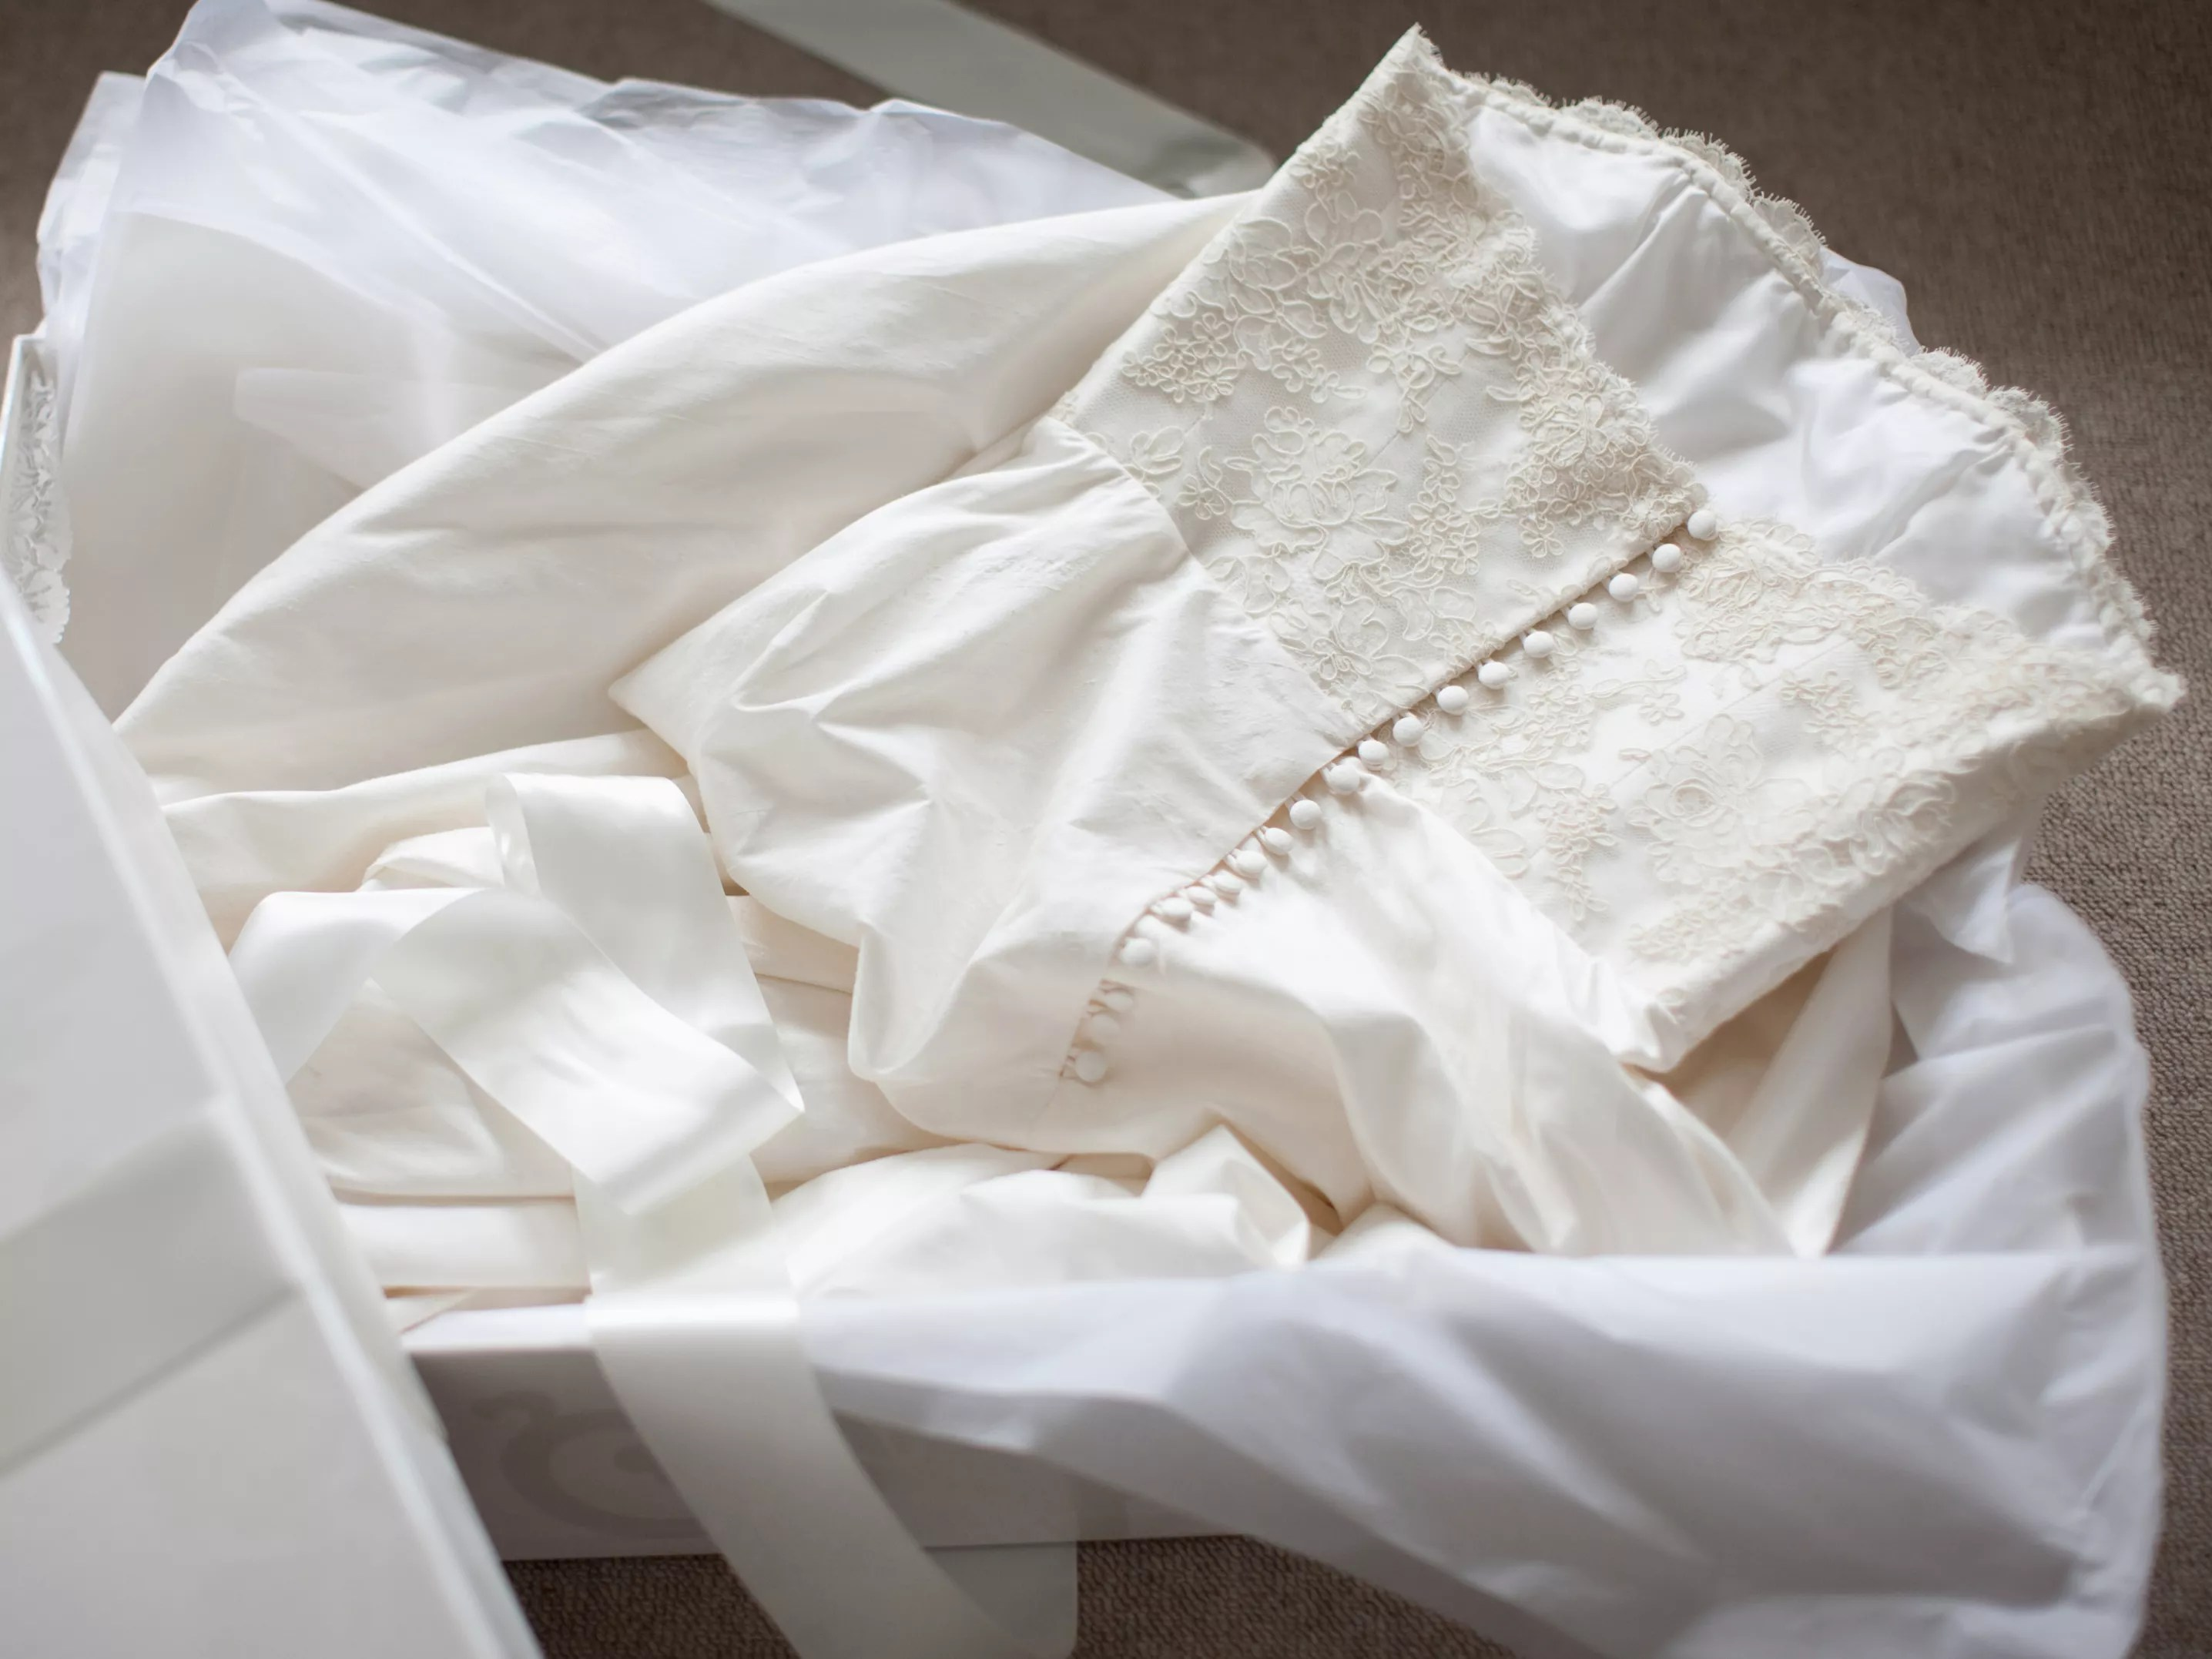 Used Wedding Dresses: Where To Buy And Sell Online